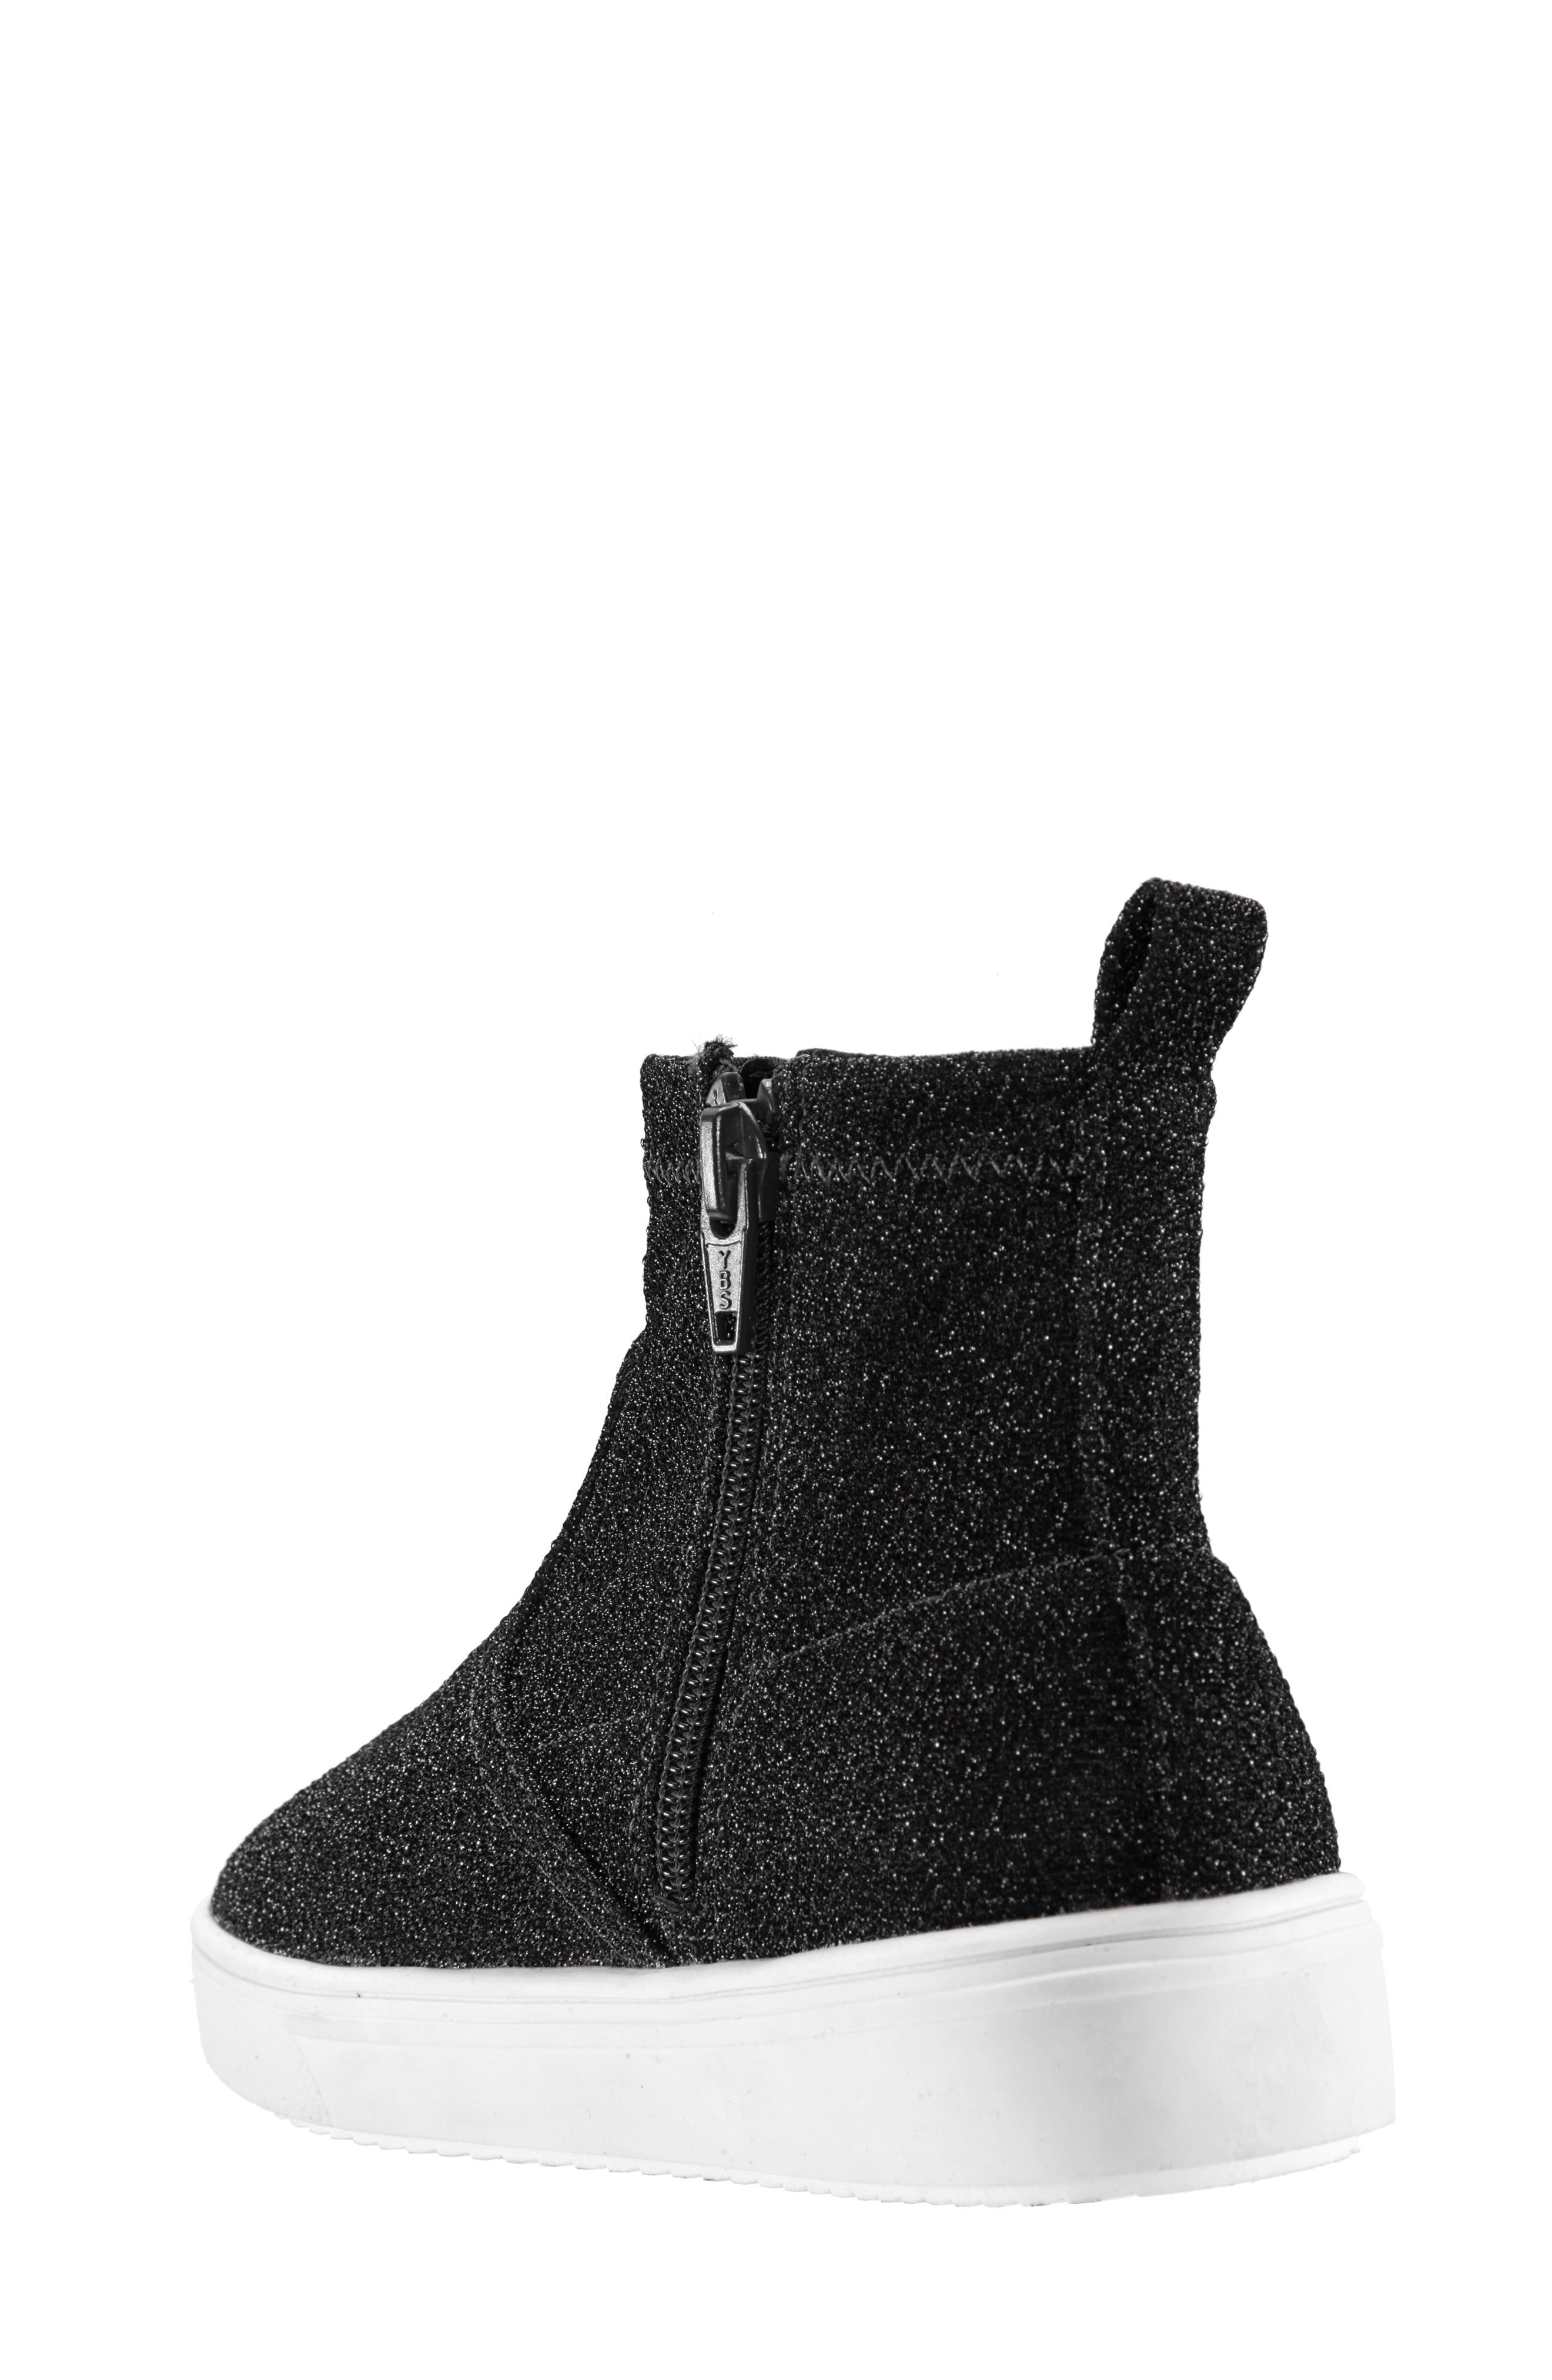 Isha Sparkle High Top Sneaker,                             Alternate thumbnail 2, color,                             BLACK STRETCH SPARKLE